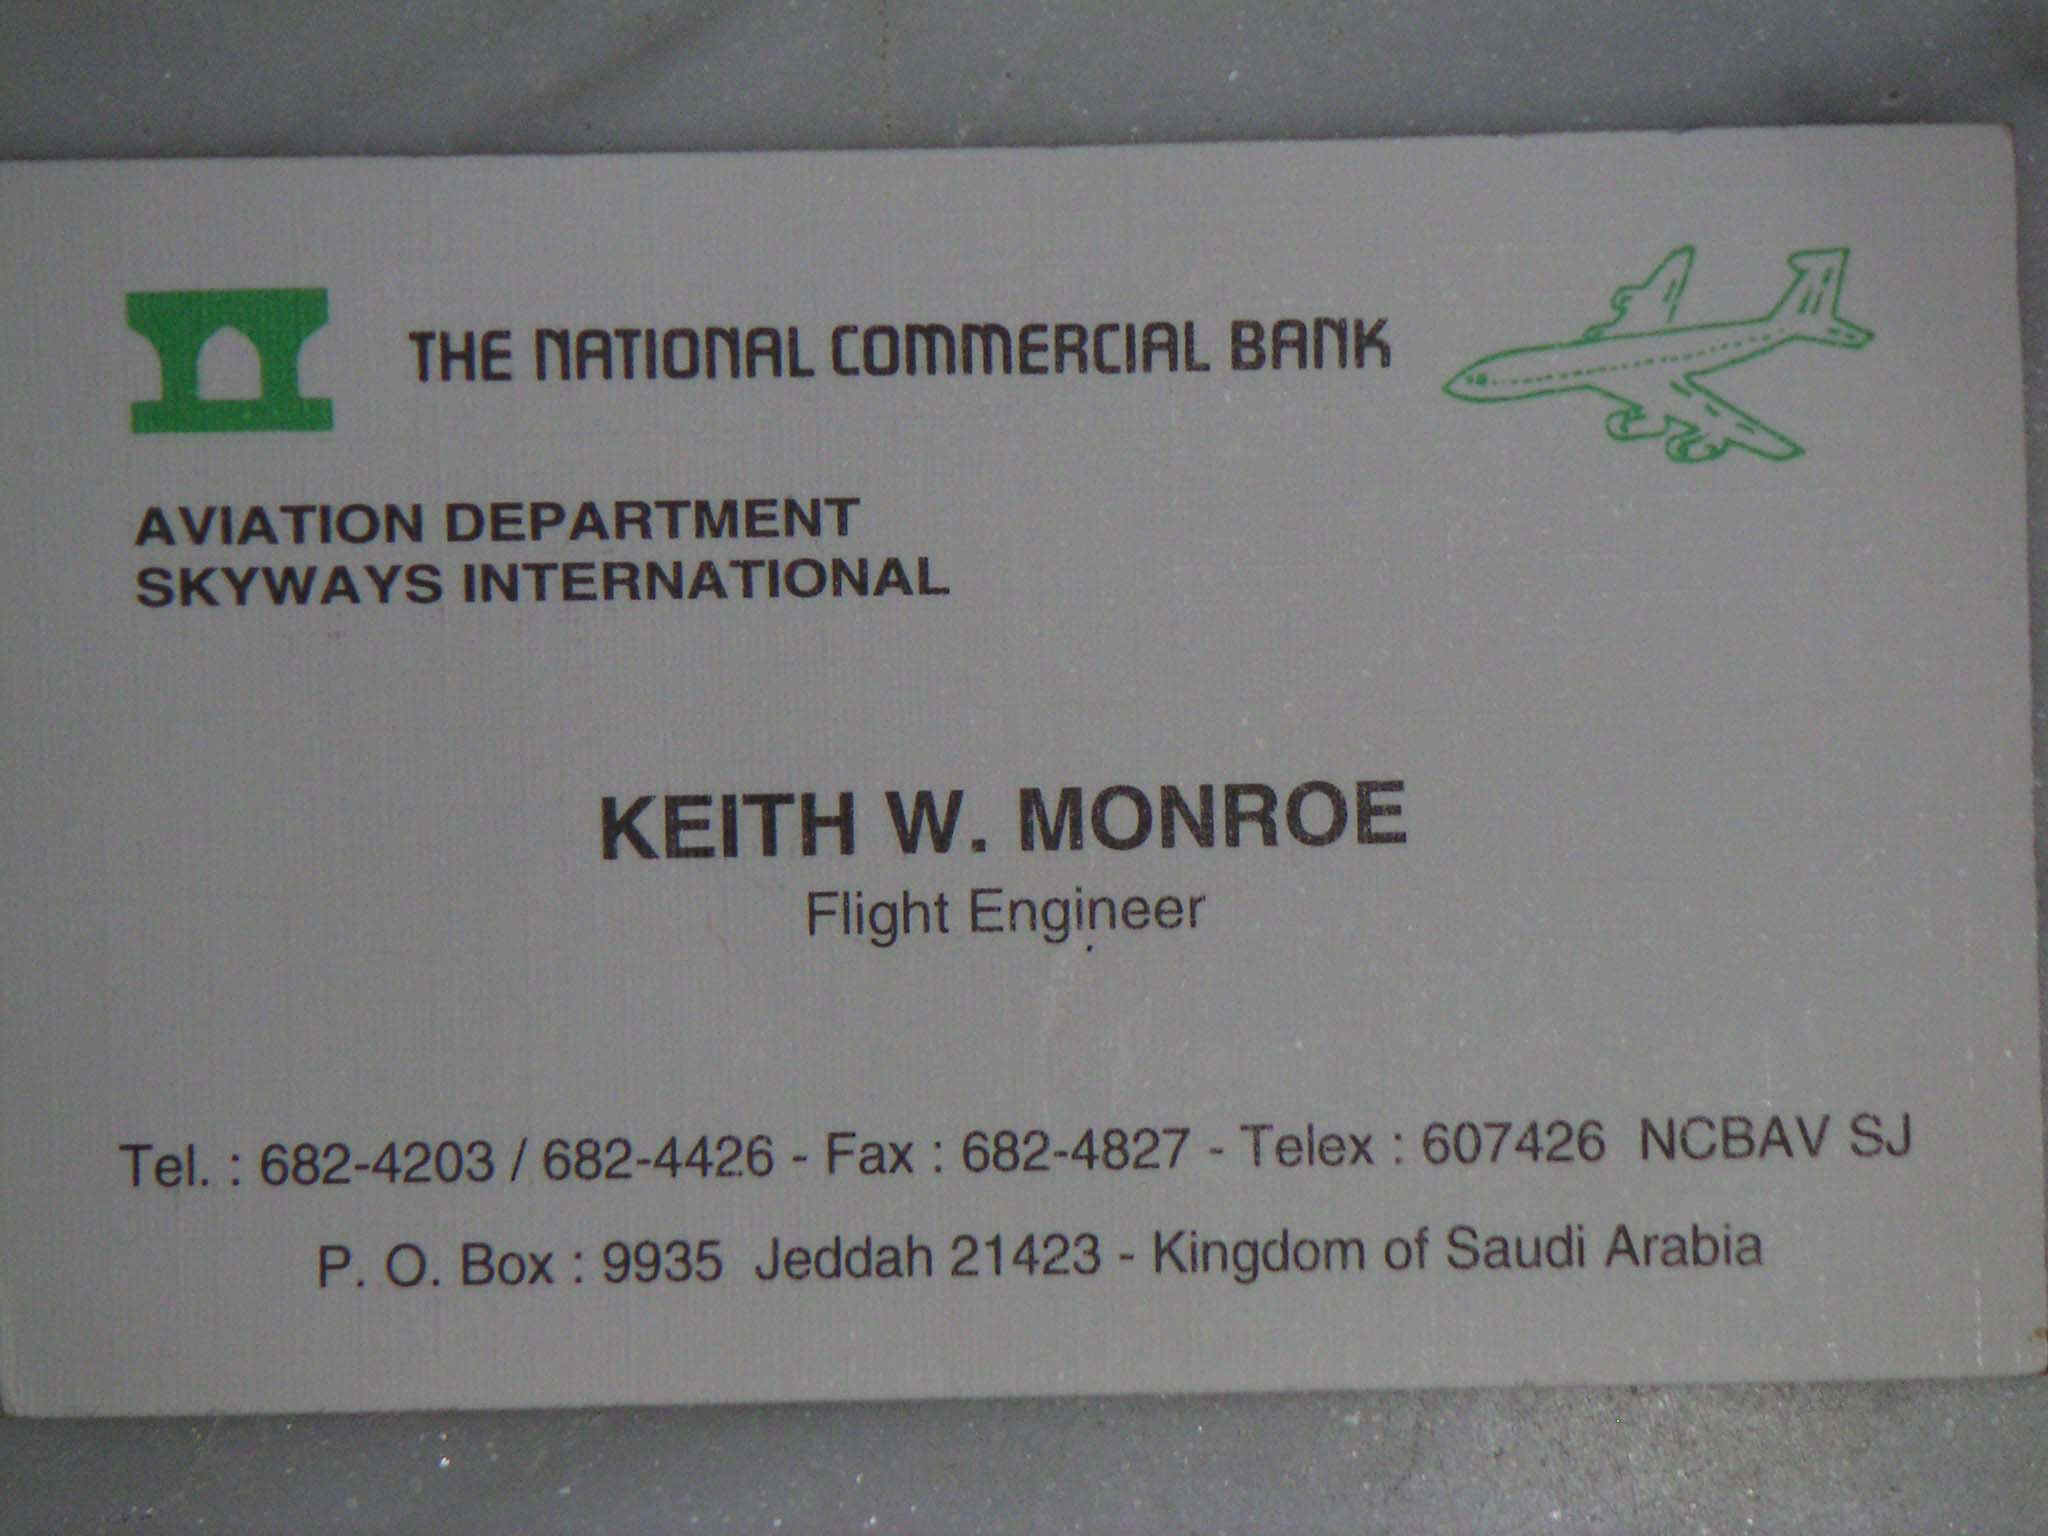 Mohammed atta and prince nayif the saudi drugs dealers who helped the business card for a flight engineer named keith monroe indicates that skyways international is a subsidiary of the national commercial bank magicingreecefo Image collections